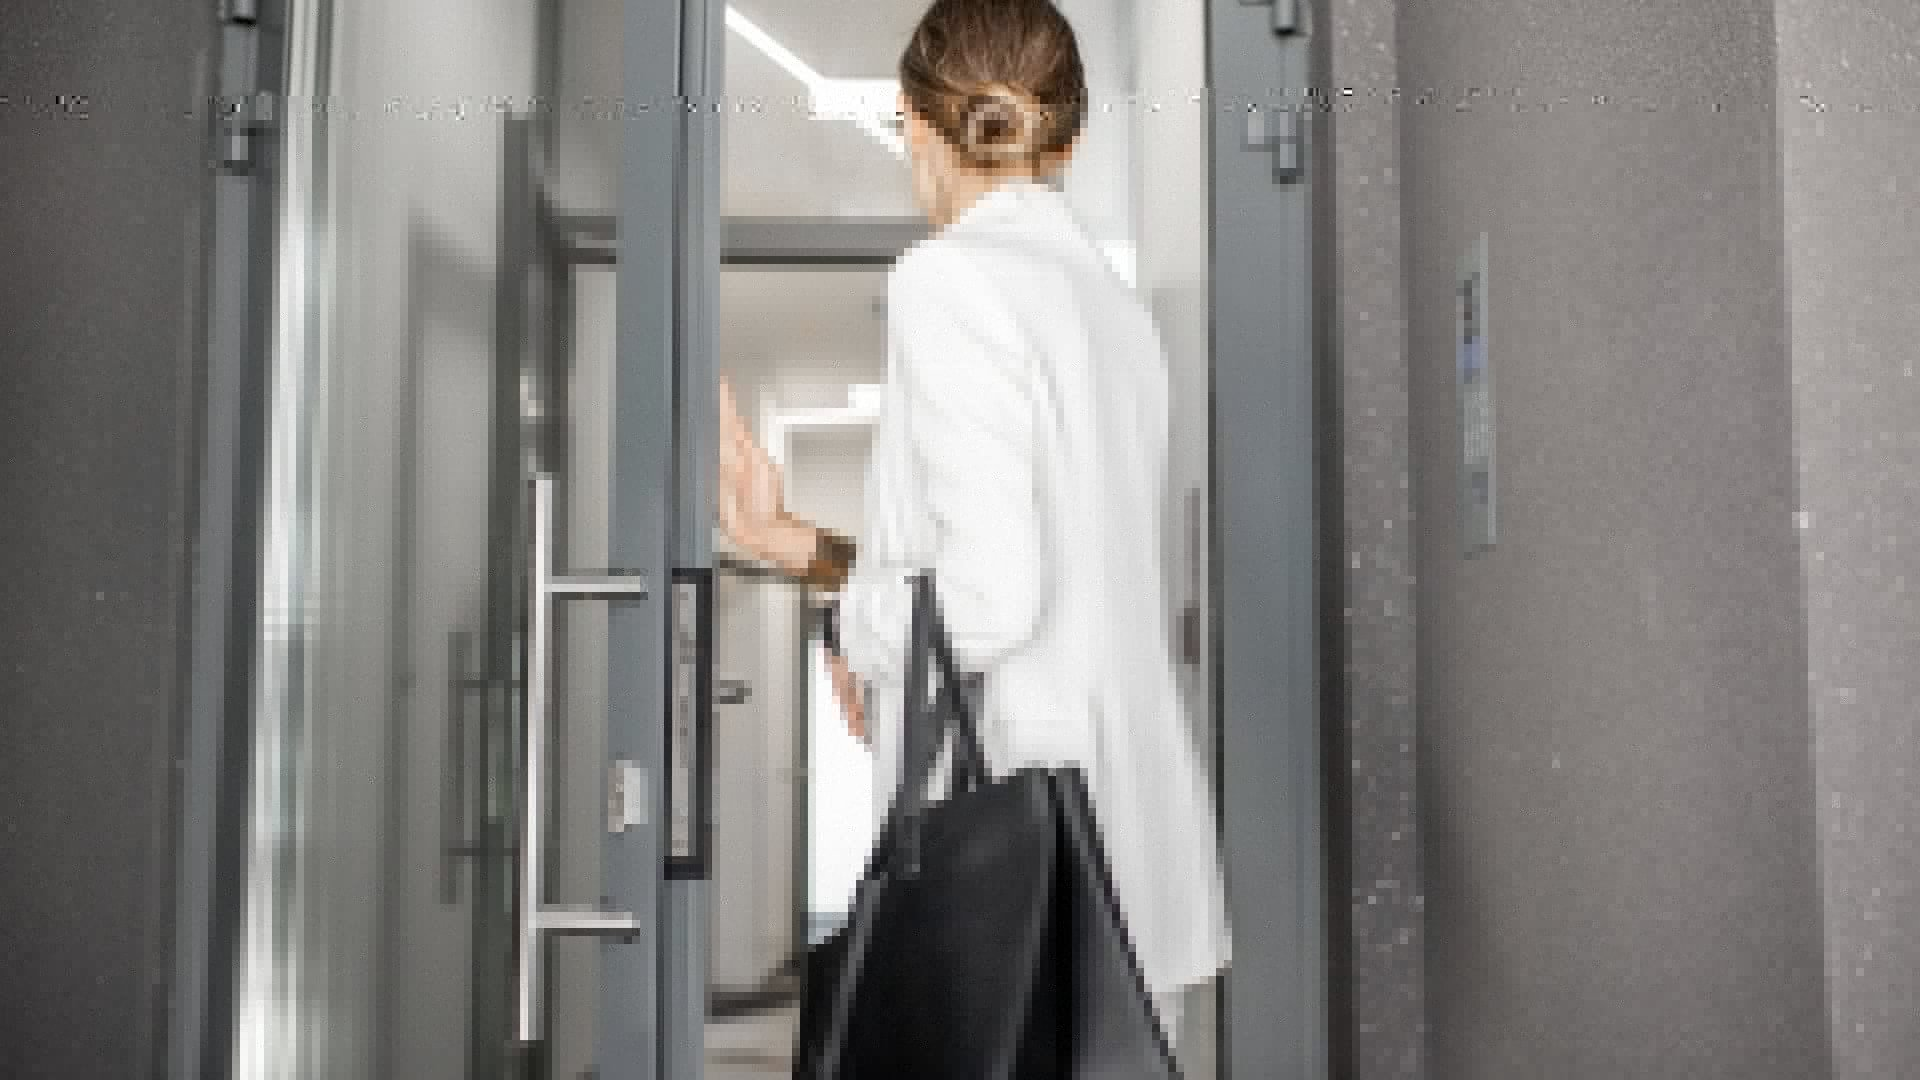 When to Stay or Walk Away: Your Guide to Navigating Business Development